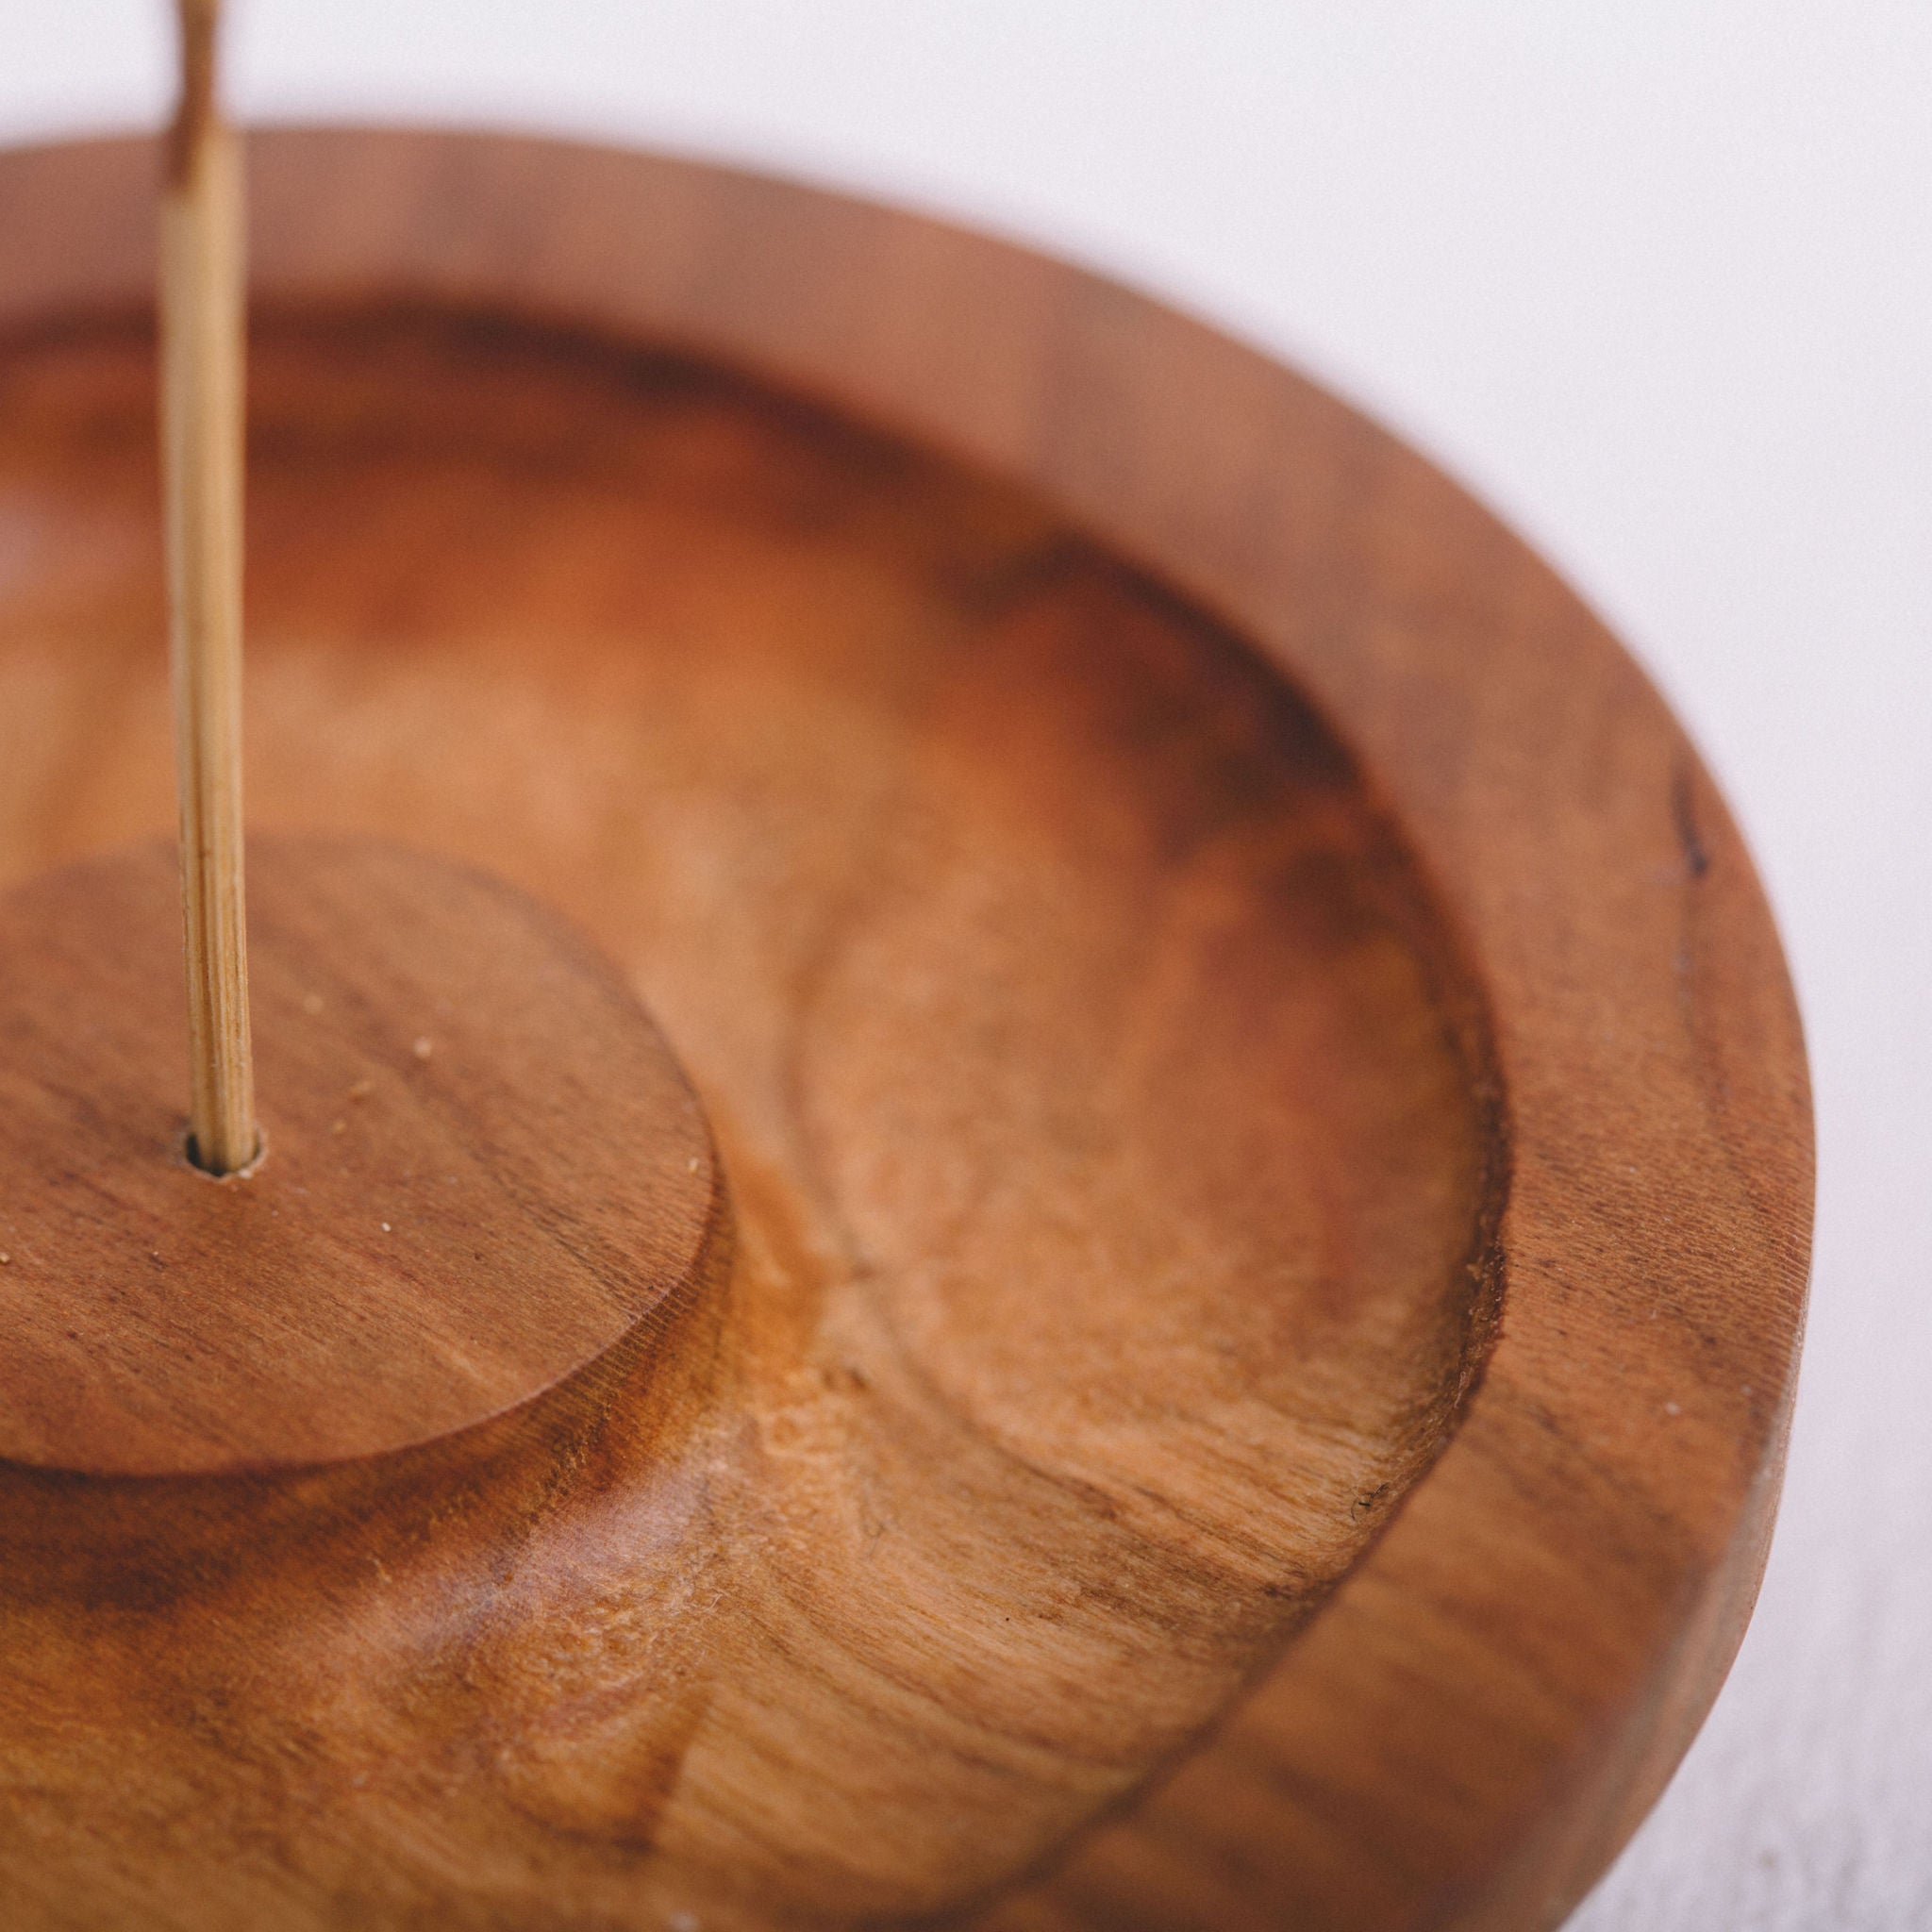 MINGLED GOODS || ROUND WOODEN INCENSE BURNER